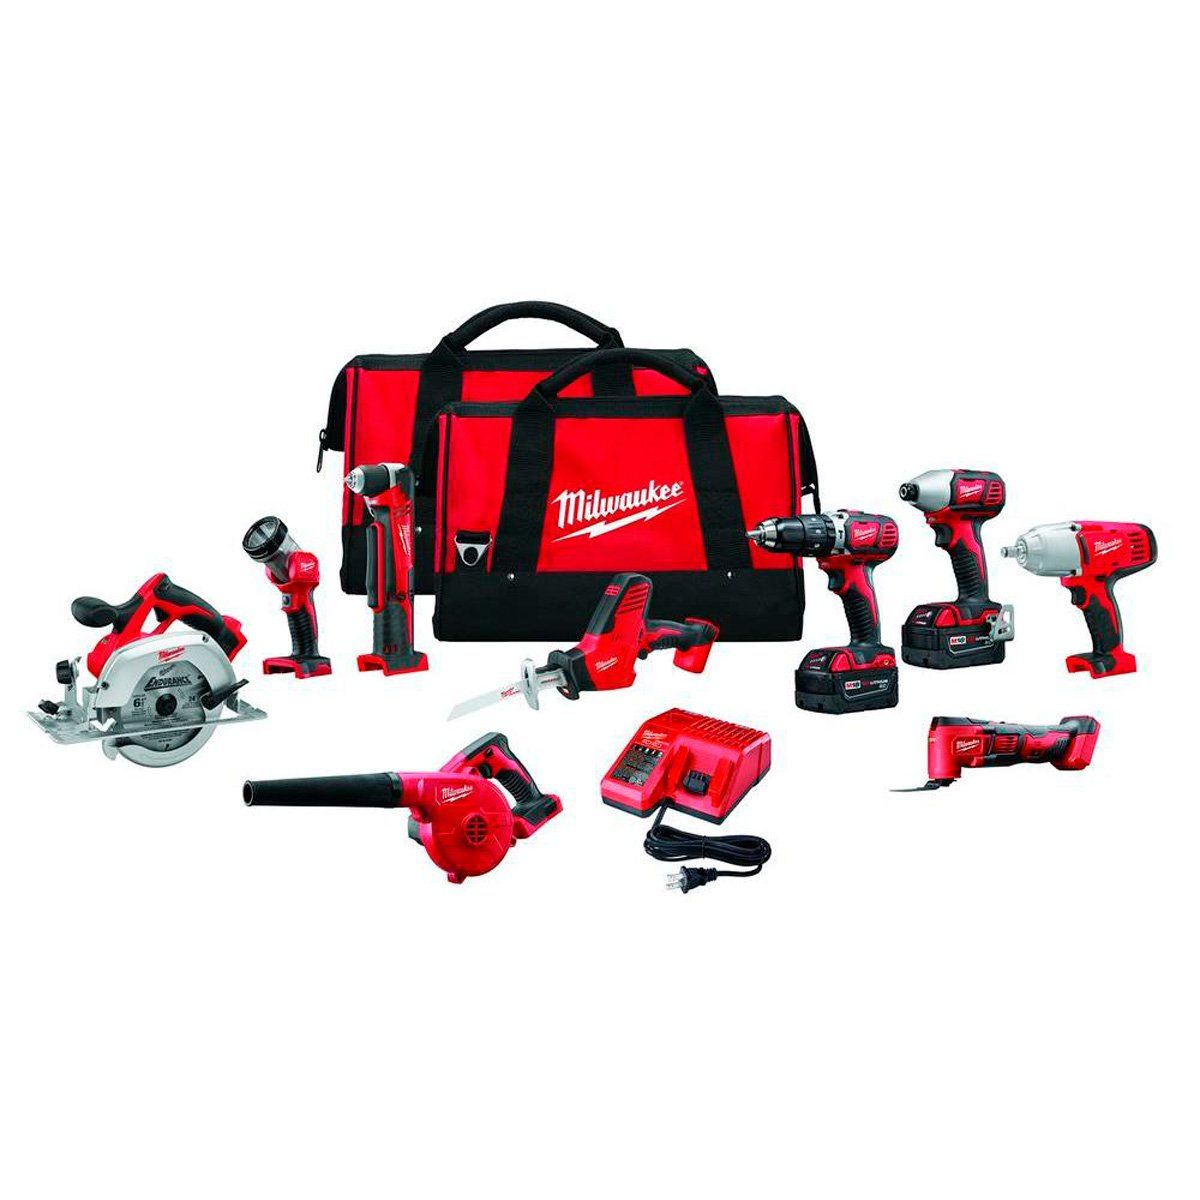 100 Incredible Tools Every Diyer Should Know About Combo Kit Cordless Drill Reviews Milwaukee M18